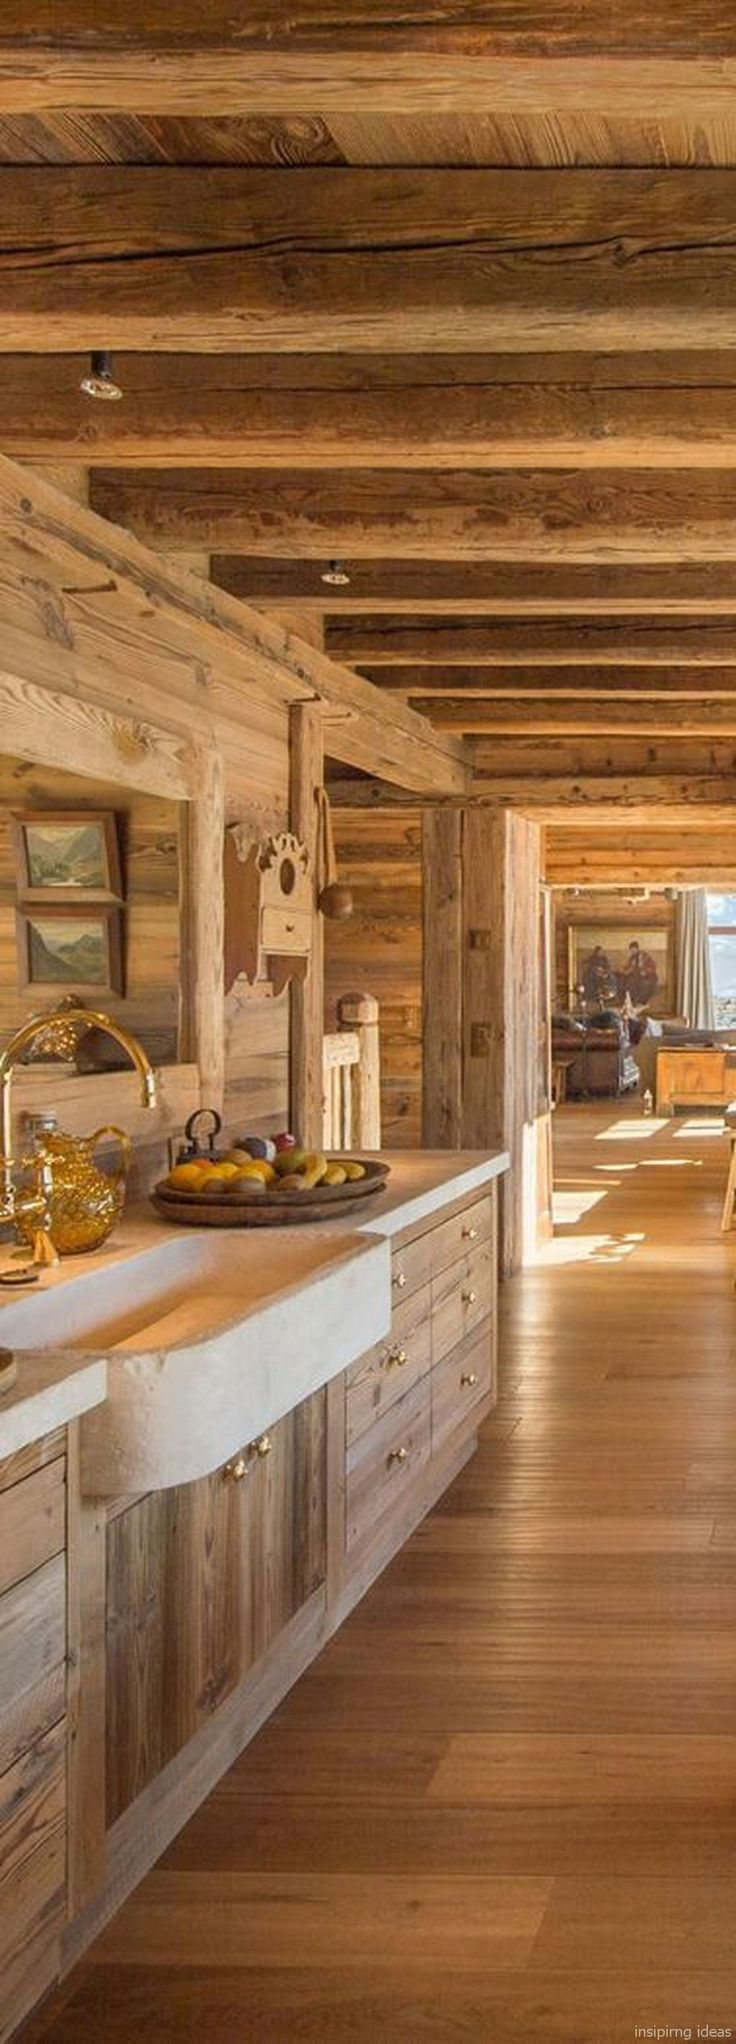 135 Rustic Log Cabin Homes Design Ideas